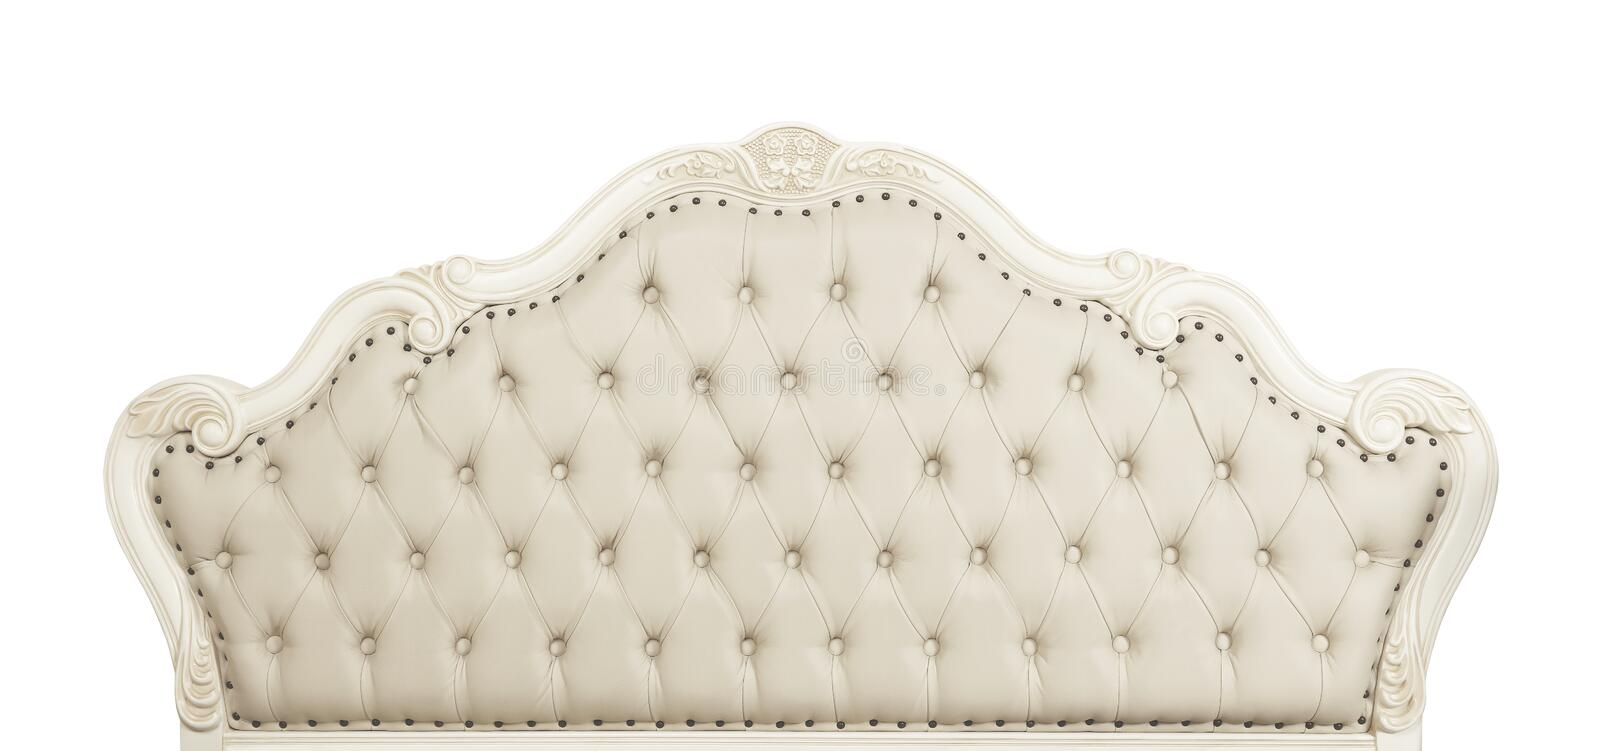 Beige leather bed headboard isolated on white royalty free stock image